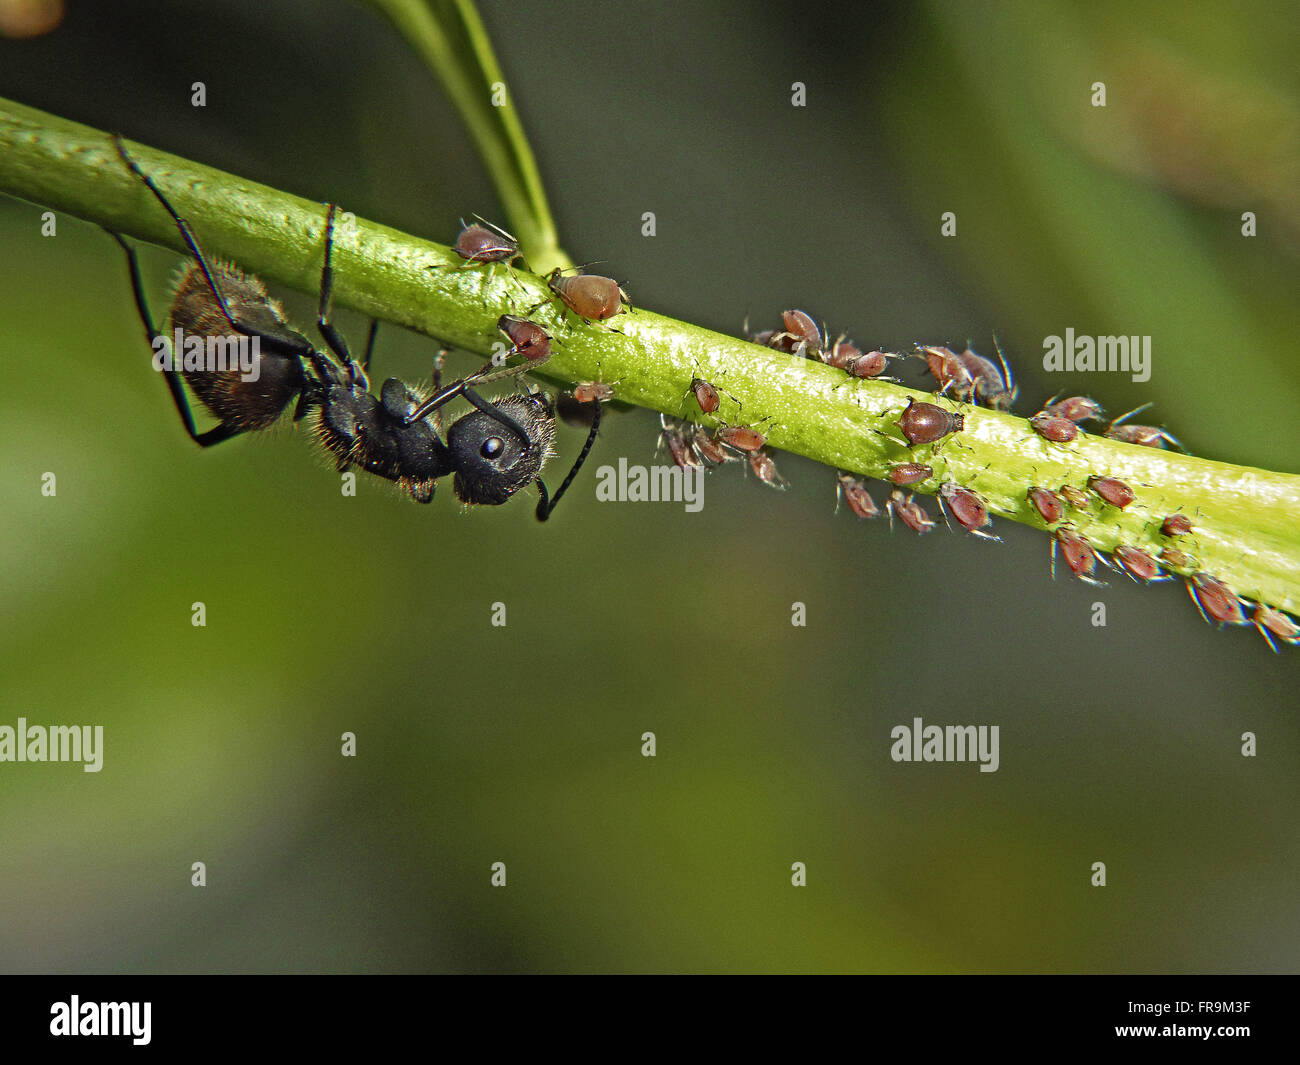 Ants and aphids - Stock Image